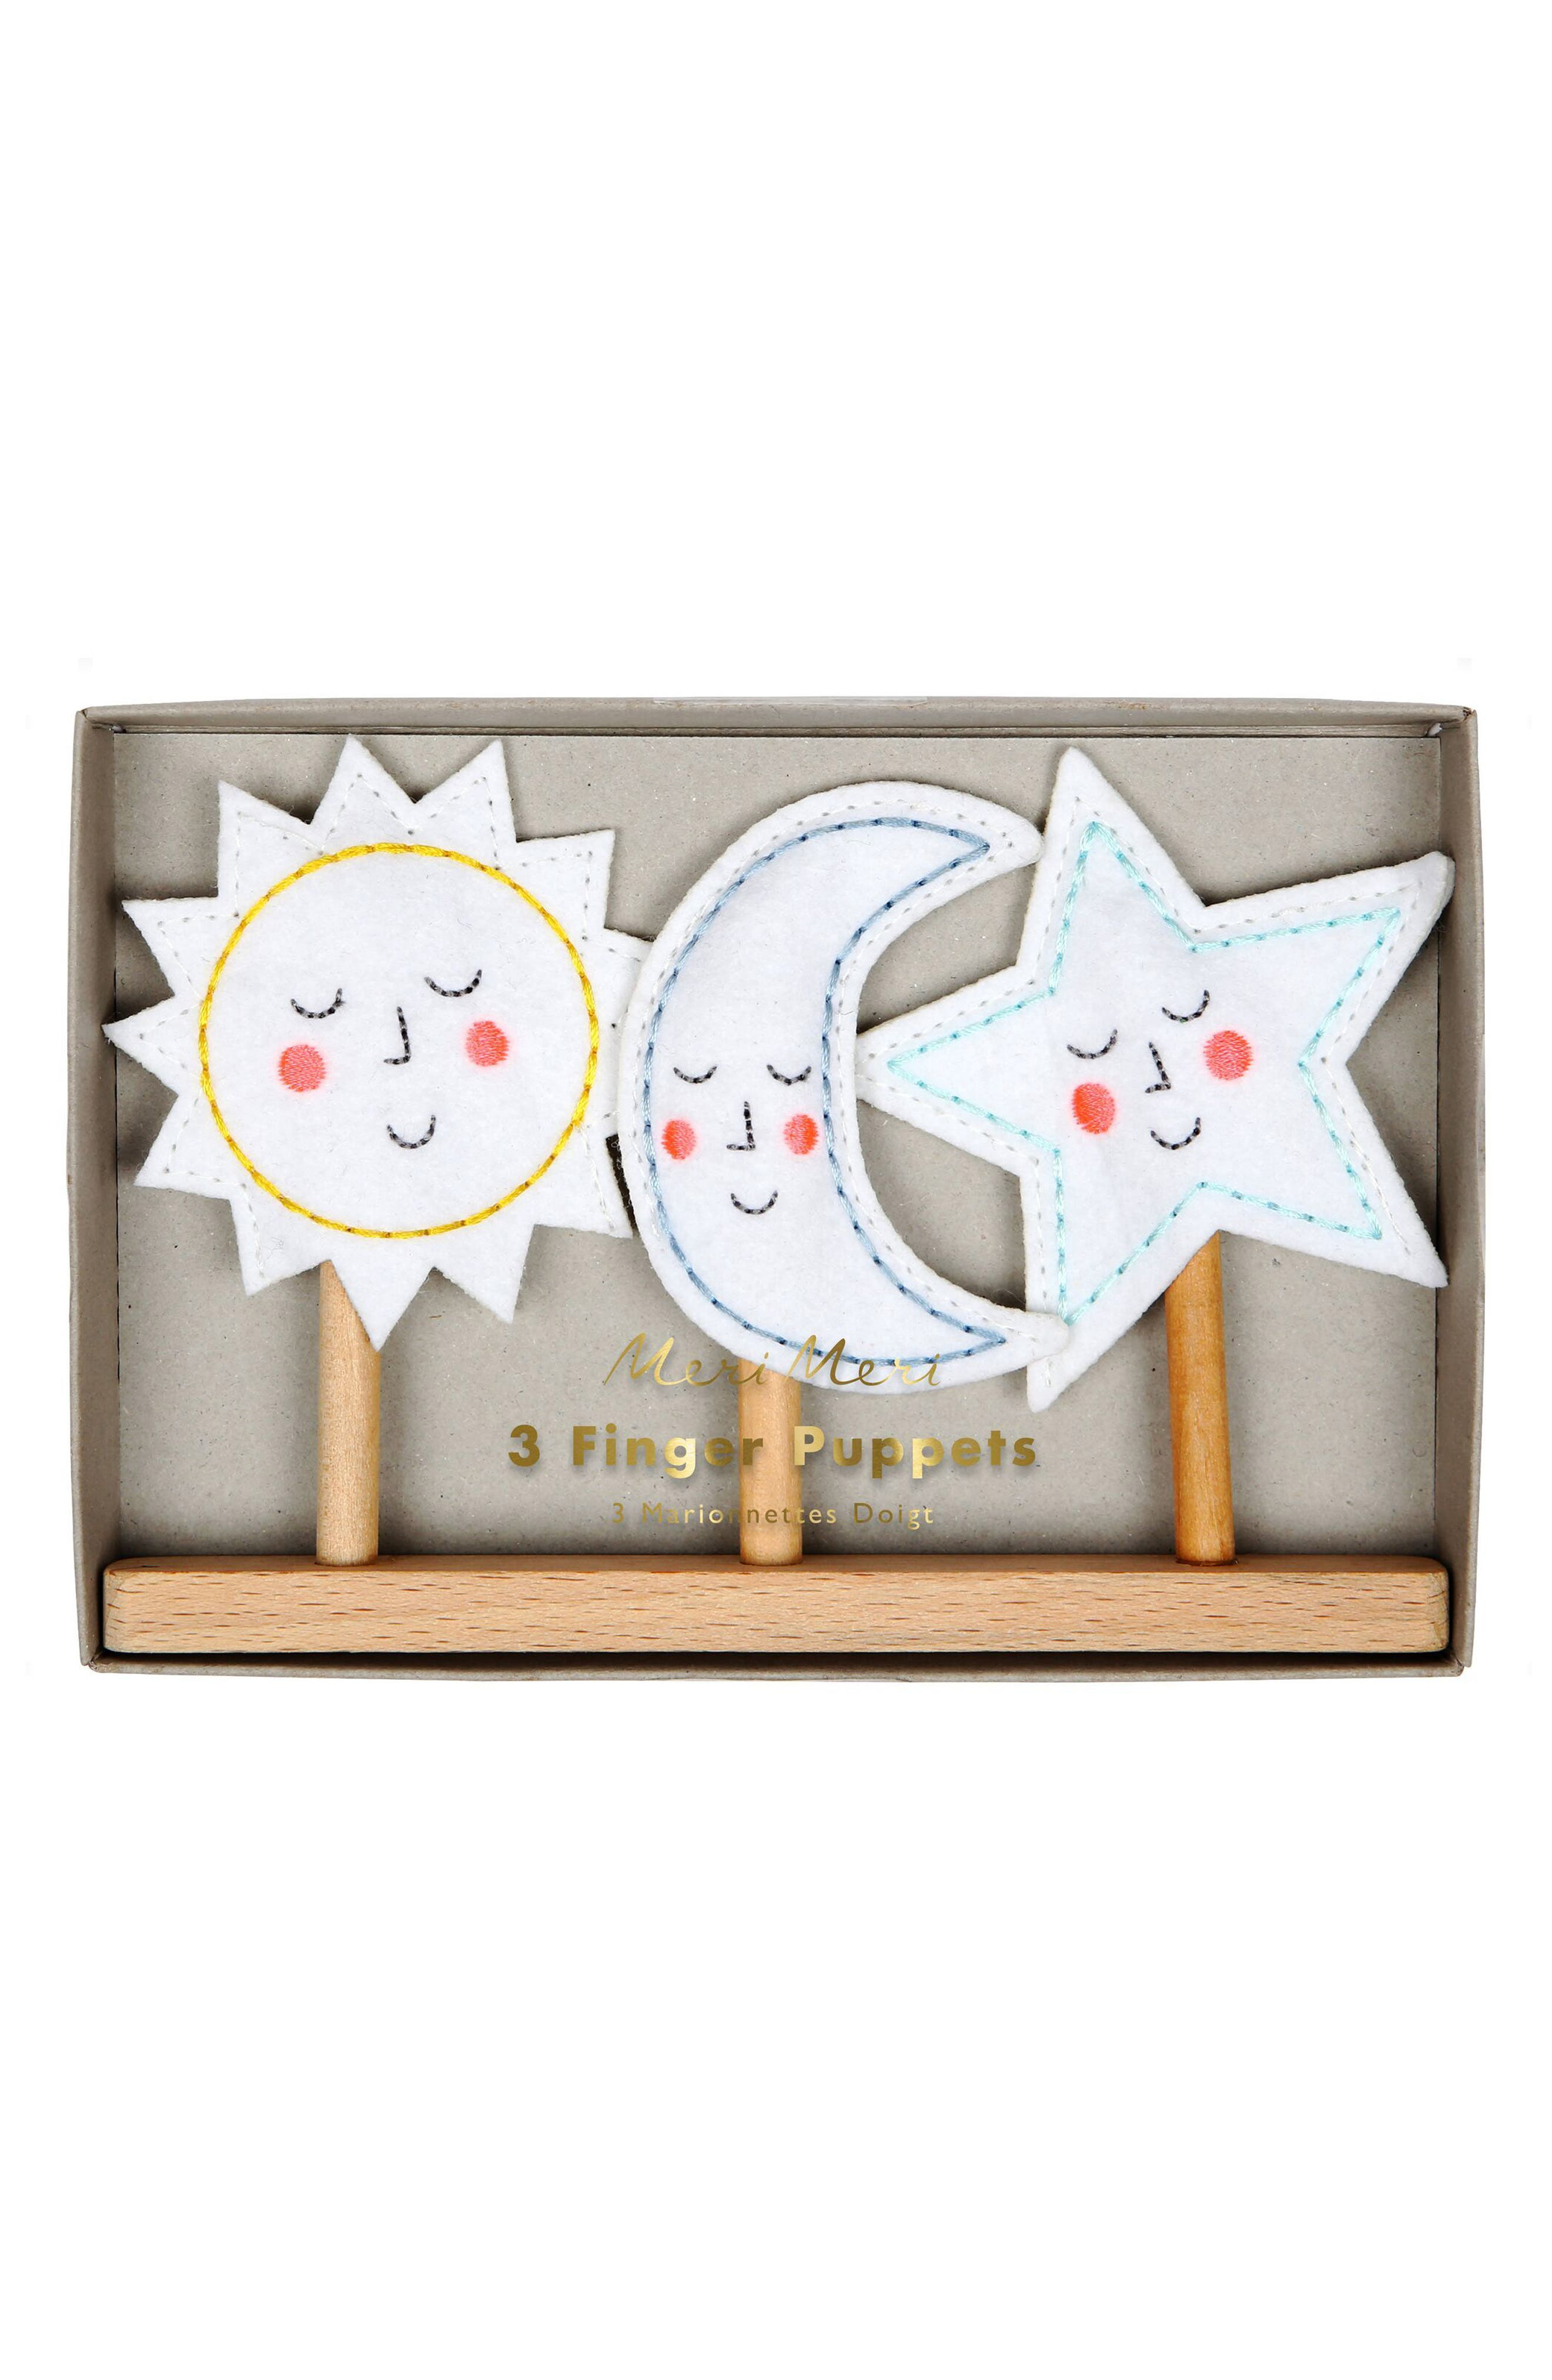 Meri Meri Set of 3 Celestial Finger Puppets